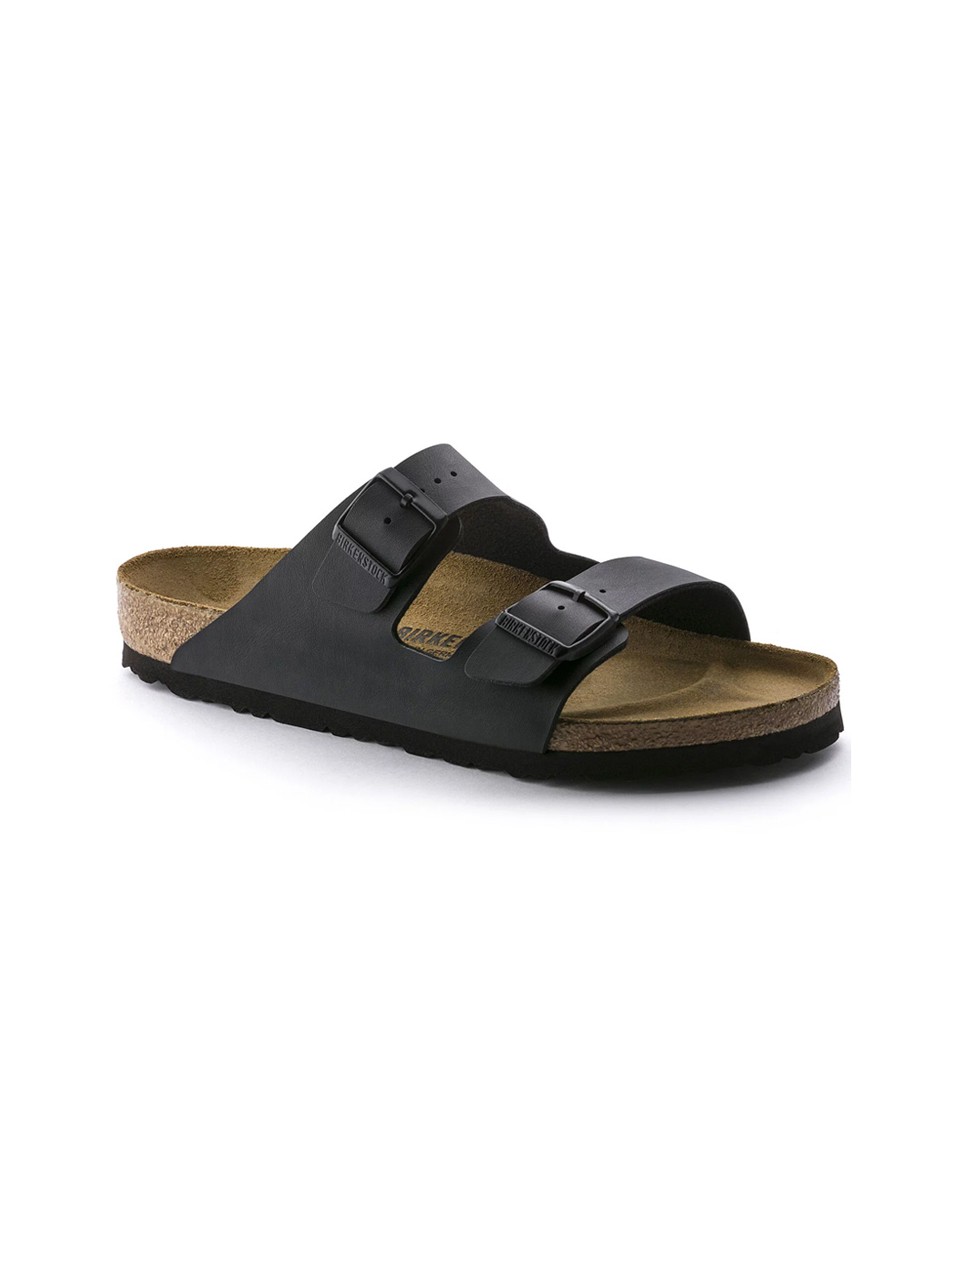 SANDAL ARIZONA NARROW